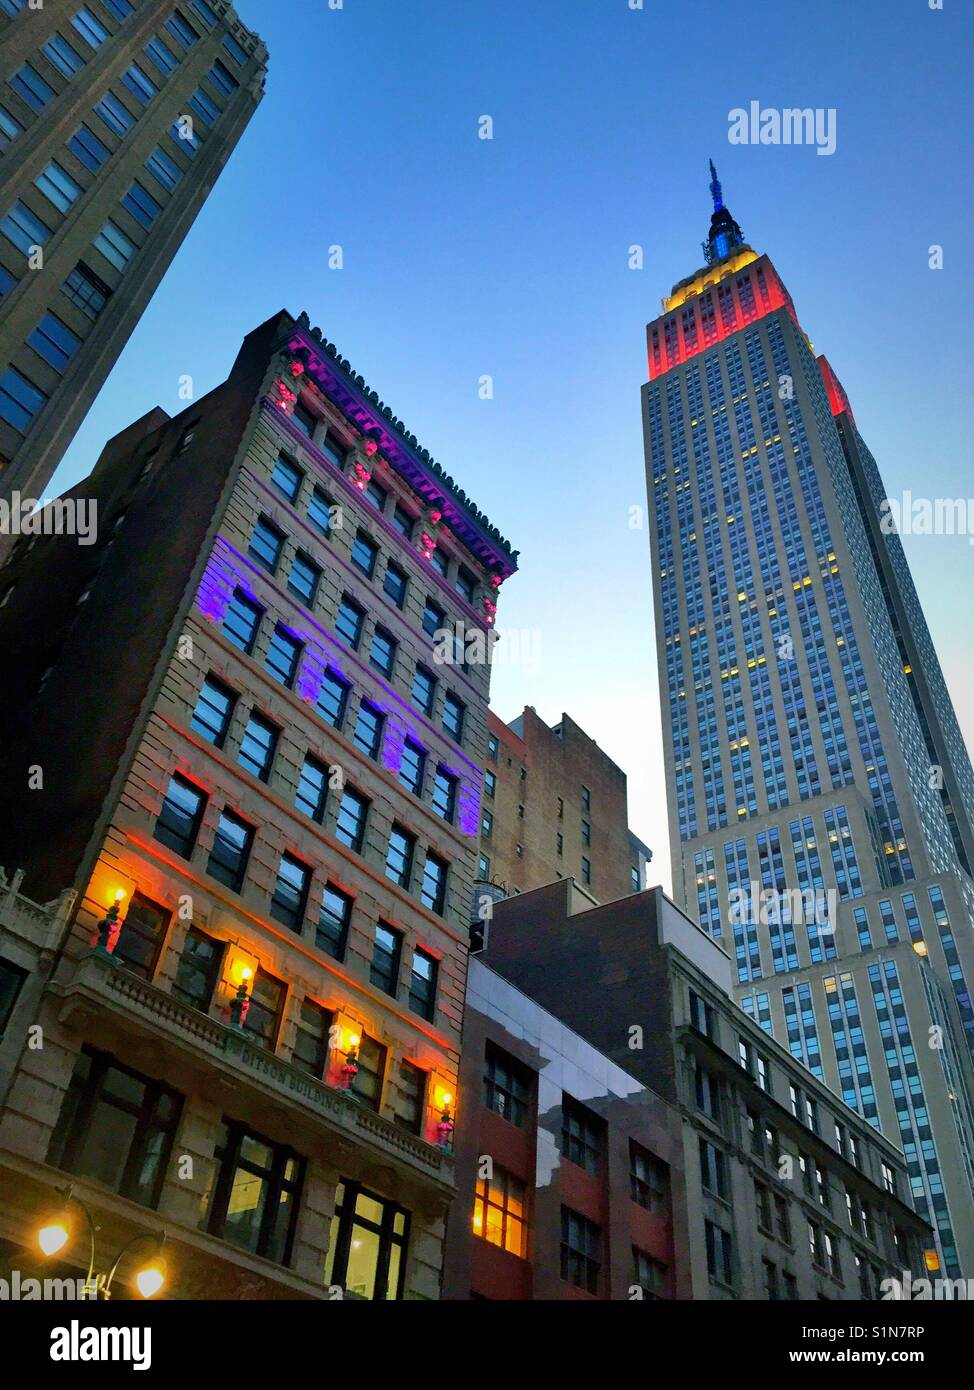 La città di New York al crepuscolo con il luminoso edificio Ditson e Empire State Building, Midtown Manhattan, USAA Foto Stock